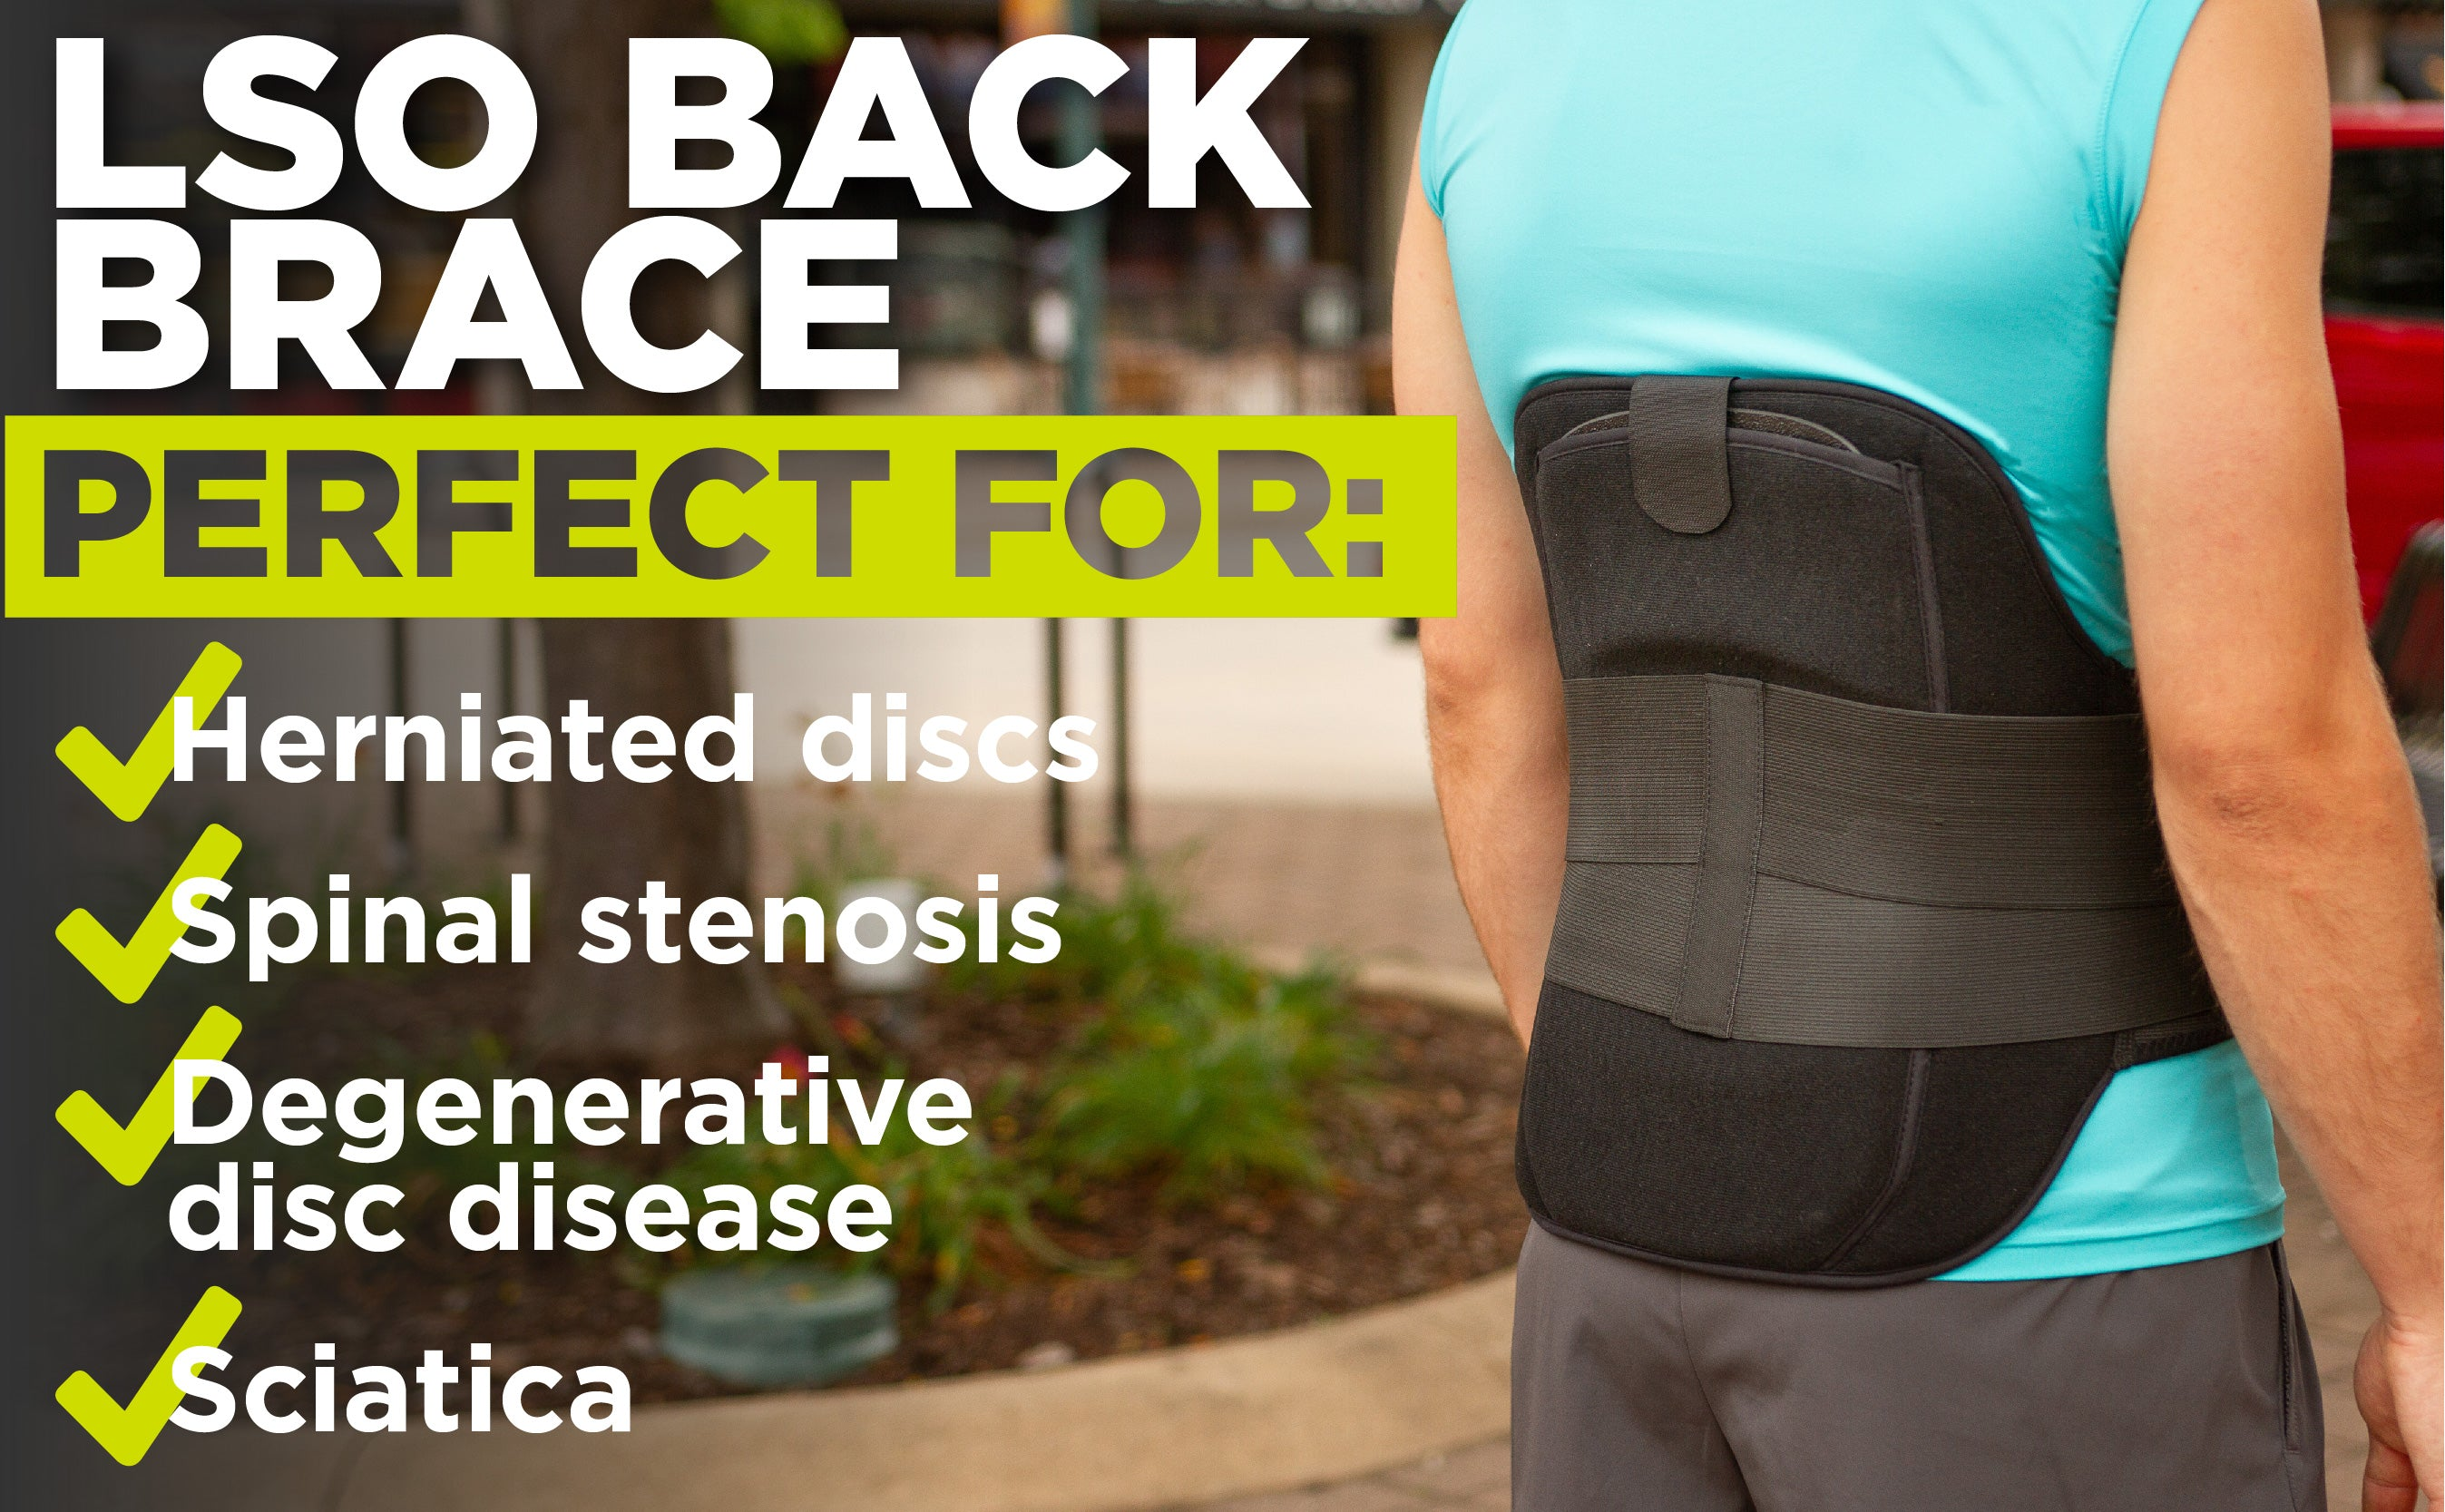 the braceability lso back brace is perfect for herniated discs, spinal stenosis, and sciatica